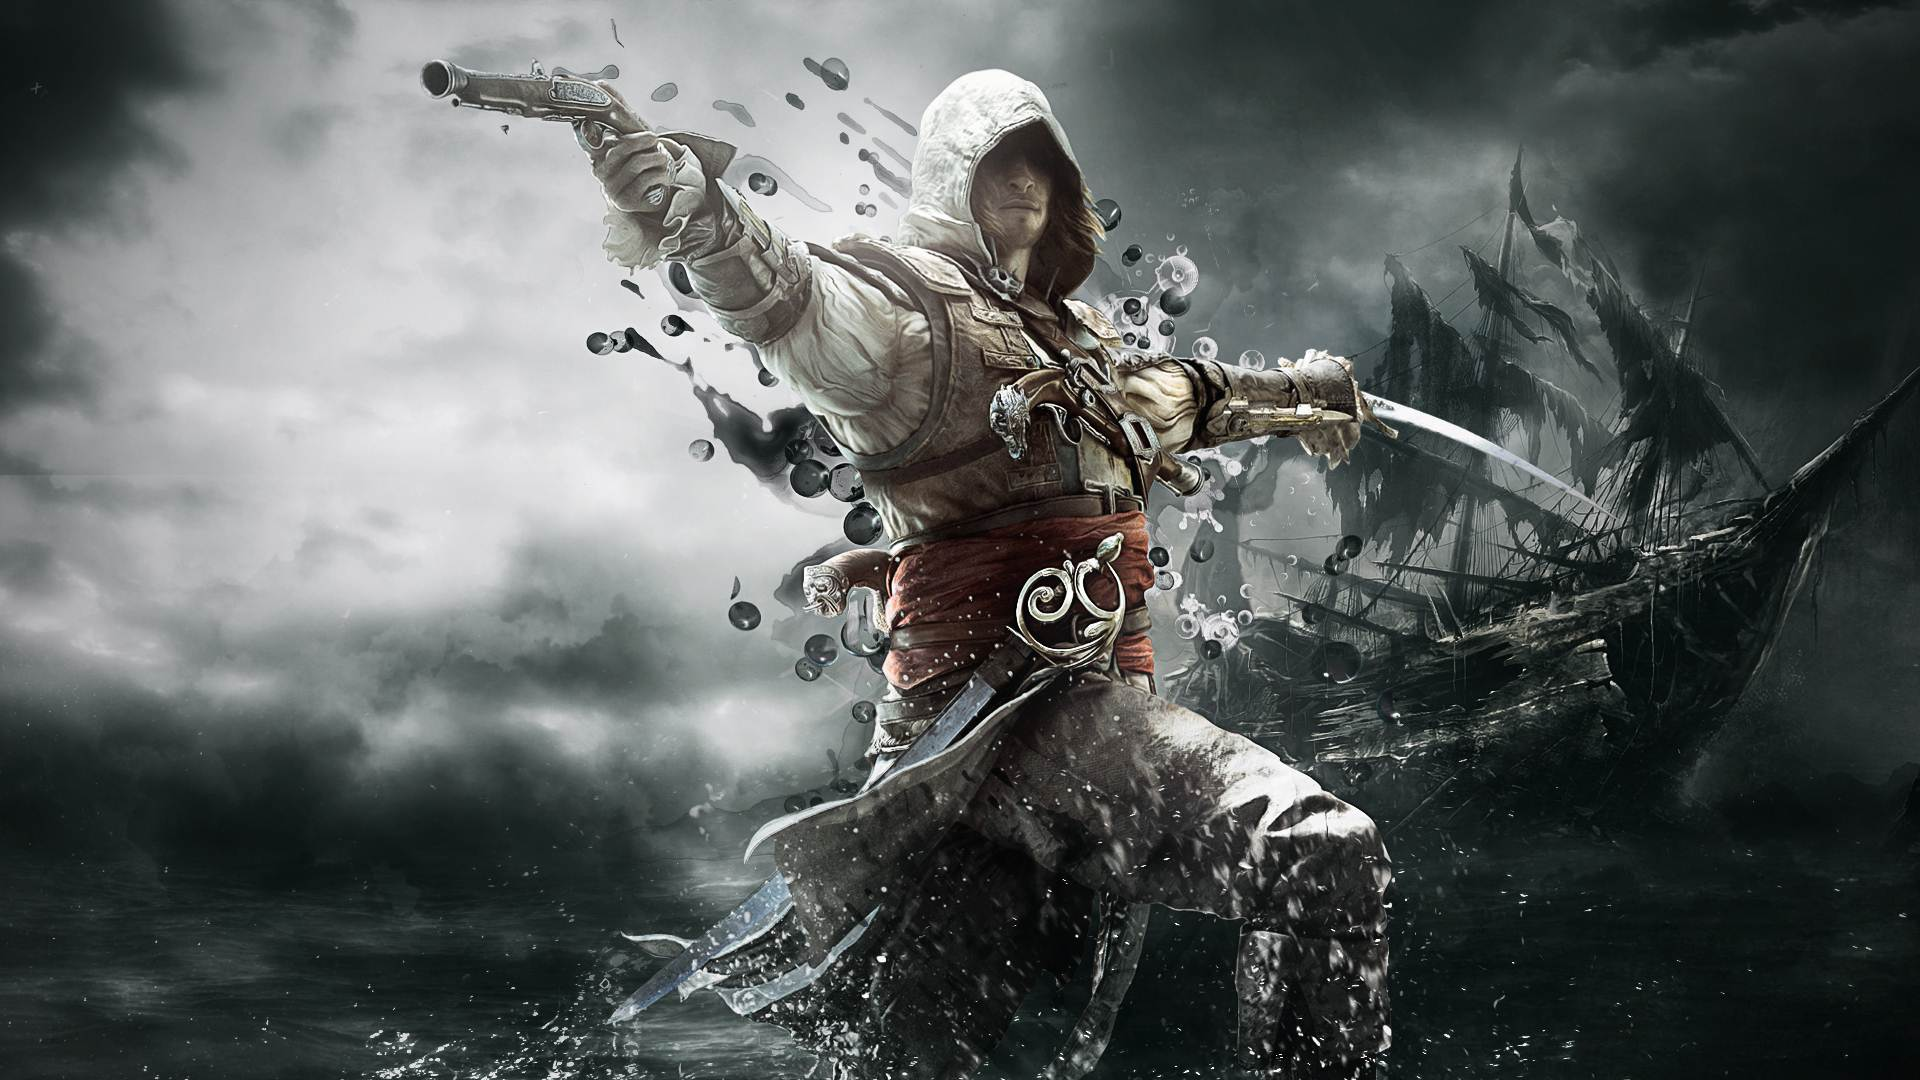 assassin�s creed movie 2016 hd wallpapers free download